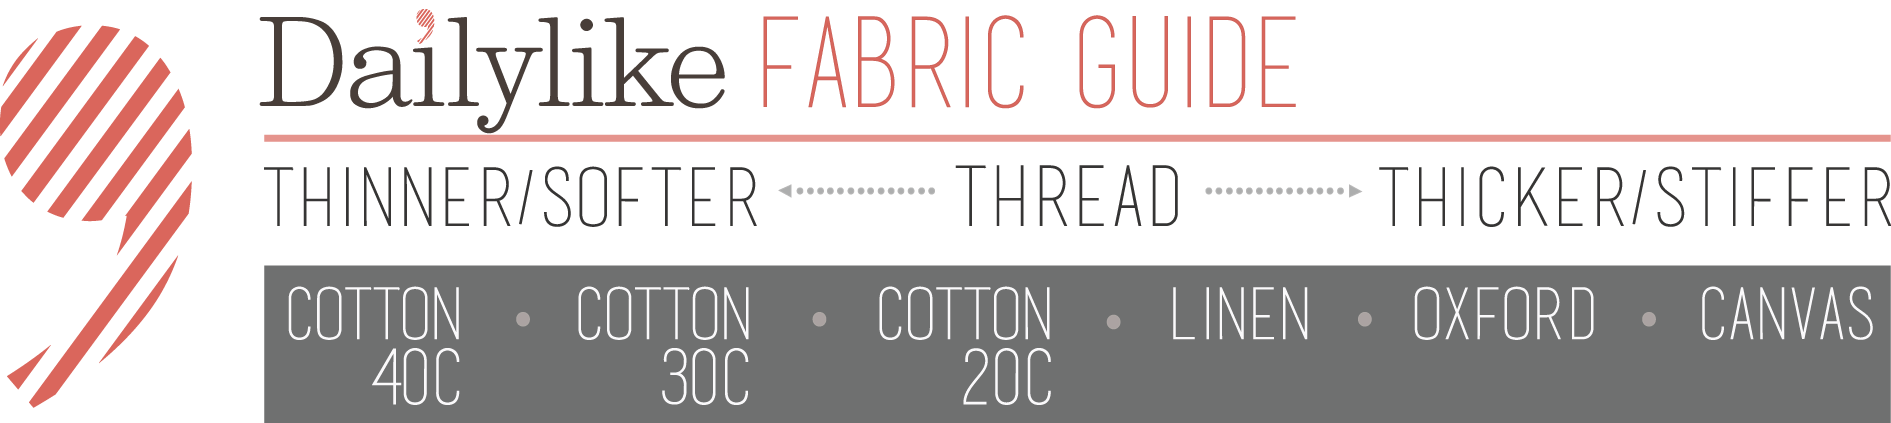 dailylike fabric guide